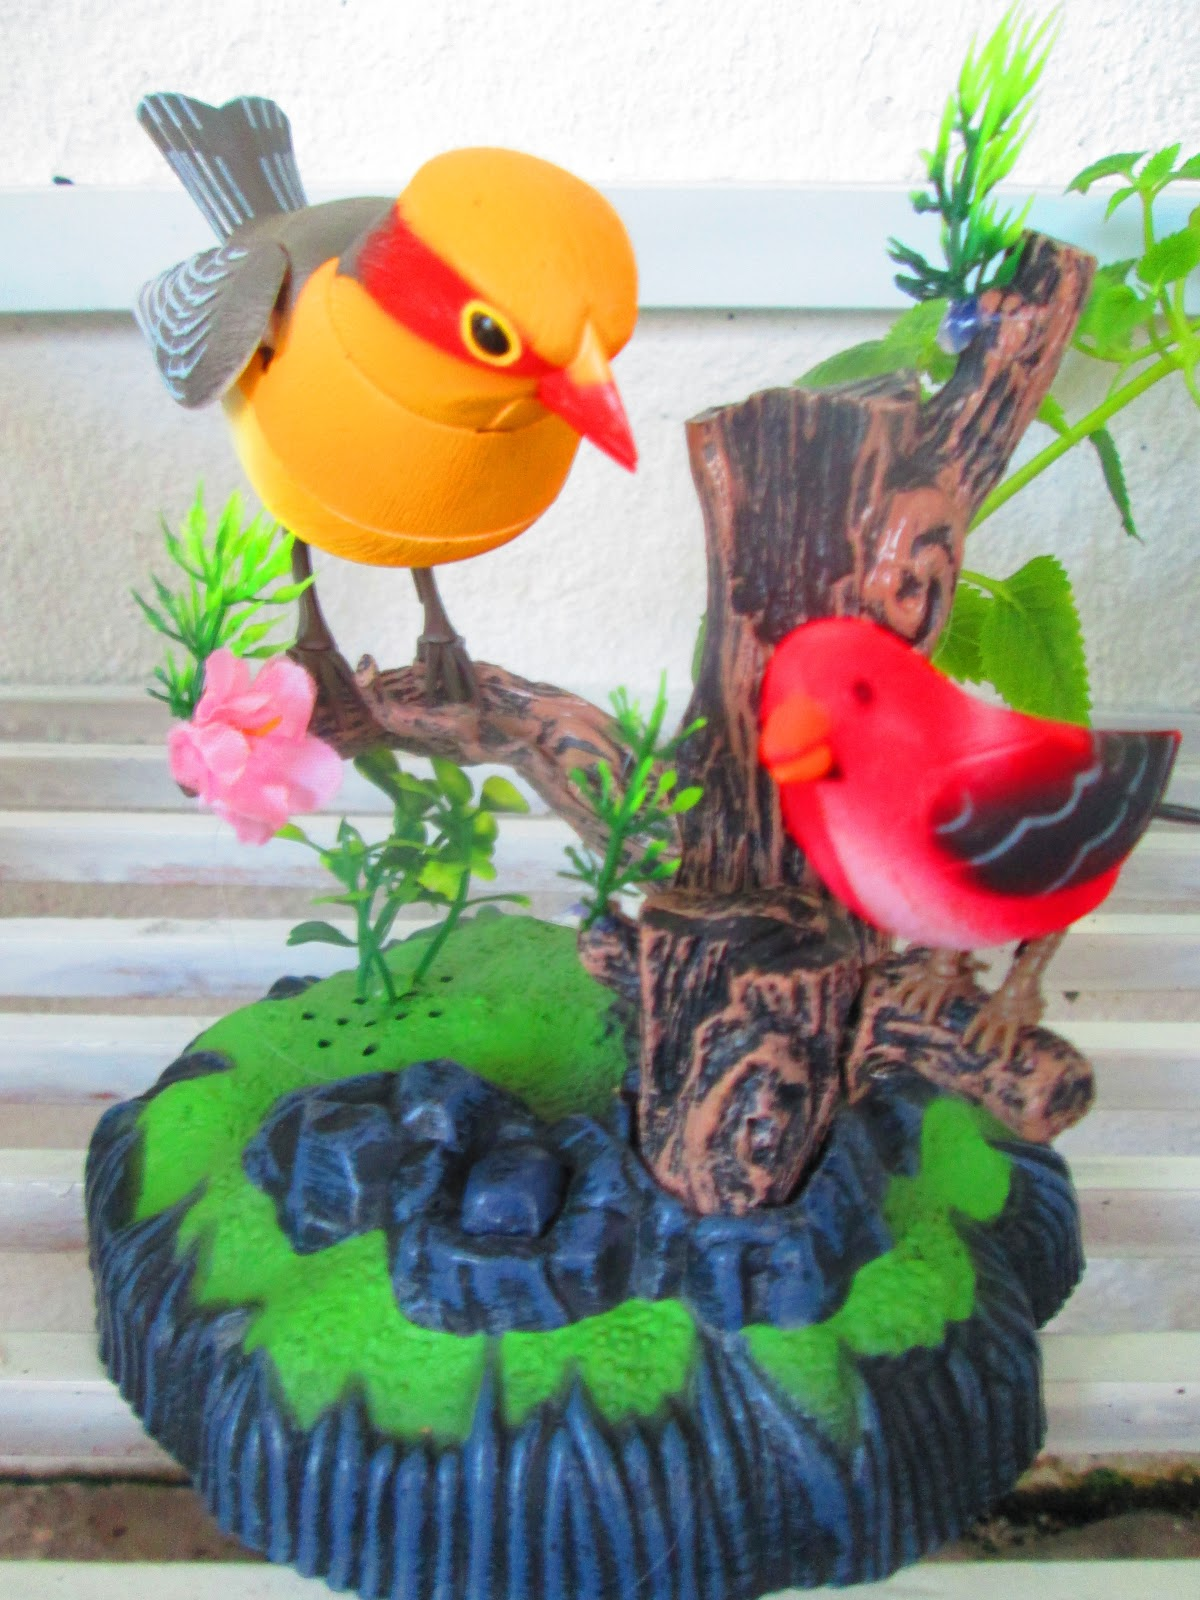 Seeds for sale online garden ornaments for sale for Lawn ornaments for sale